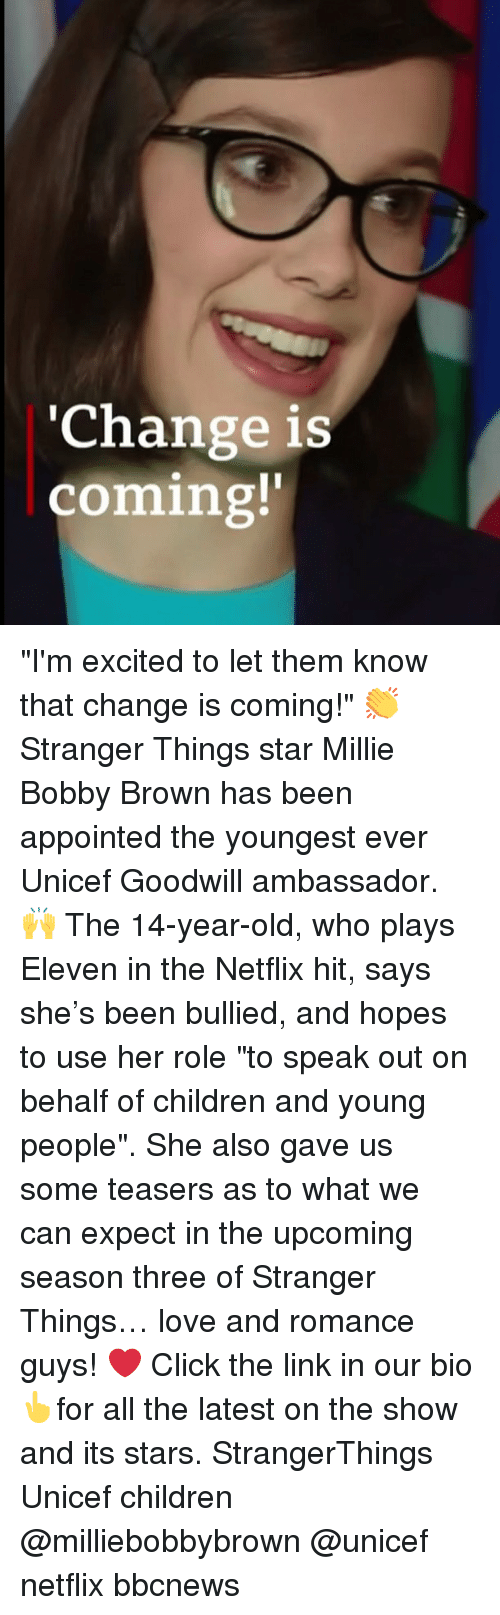 "speak out: 'Change is  coming!' ""I'm excited to let them know that change is coming!"" 👏 Stranger Things star Millie Bobby Brown has been appointed the youngest ever Unicef Goodwill ambassador. 🙌 The 14-year-old, who plays Eleven in the Netflix hit, says she's been bullied, and hopes to use her role ""to speak out on behalf of children and young people"". She also gave us some teasers as to what we can expect in the upcoming season three of Stranger Things… love and romance guys! ❤️ Click the link in our bio👆for all the latest on the show and its stars. StrangerThings Unicef children @milliebobbybrown @unicef netflix bbcnews"